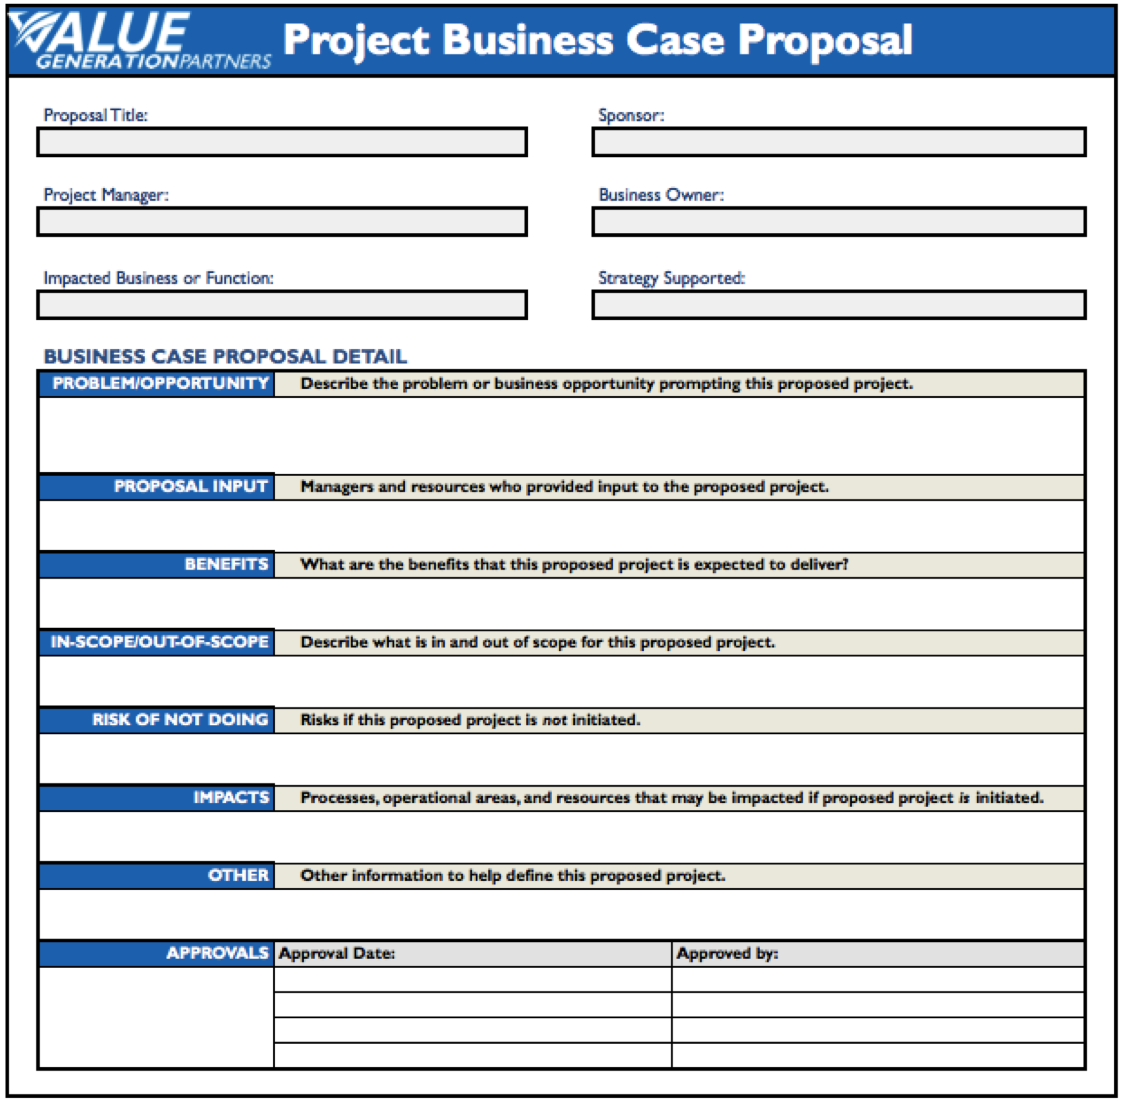 Regardless of your project business case proposal template format regardless of your project business case proposal template format wdtpcn00 cheaphphosting Image collections